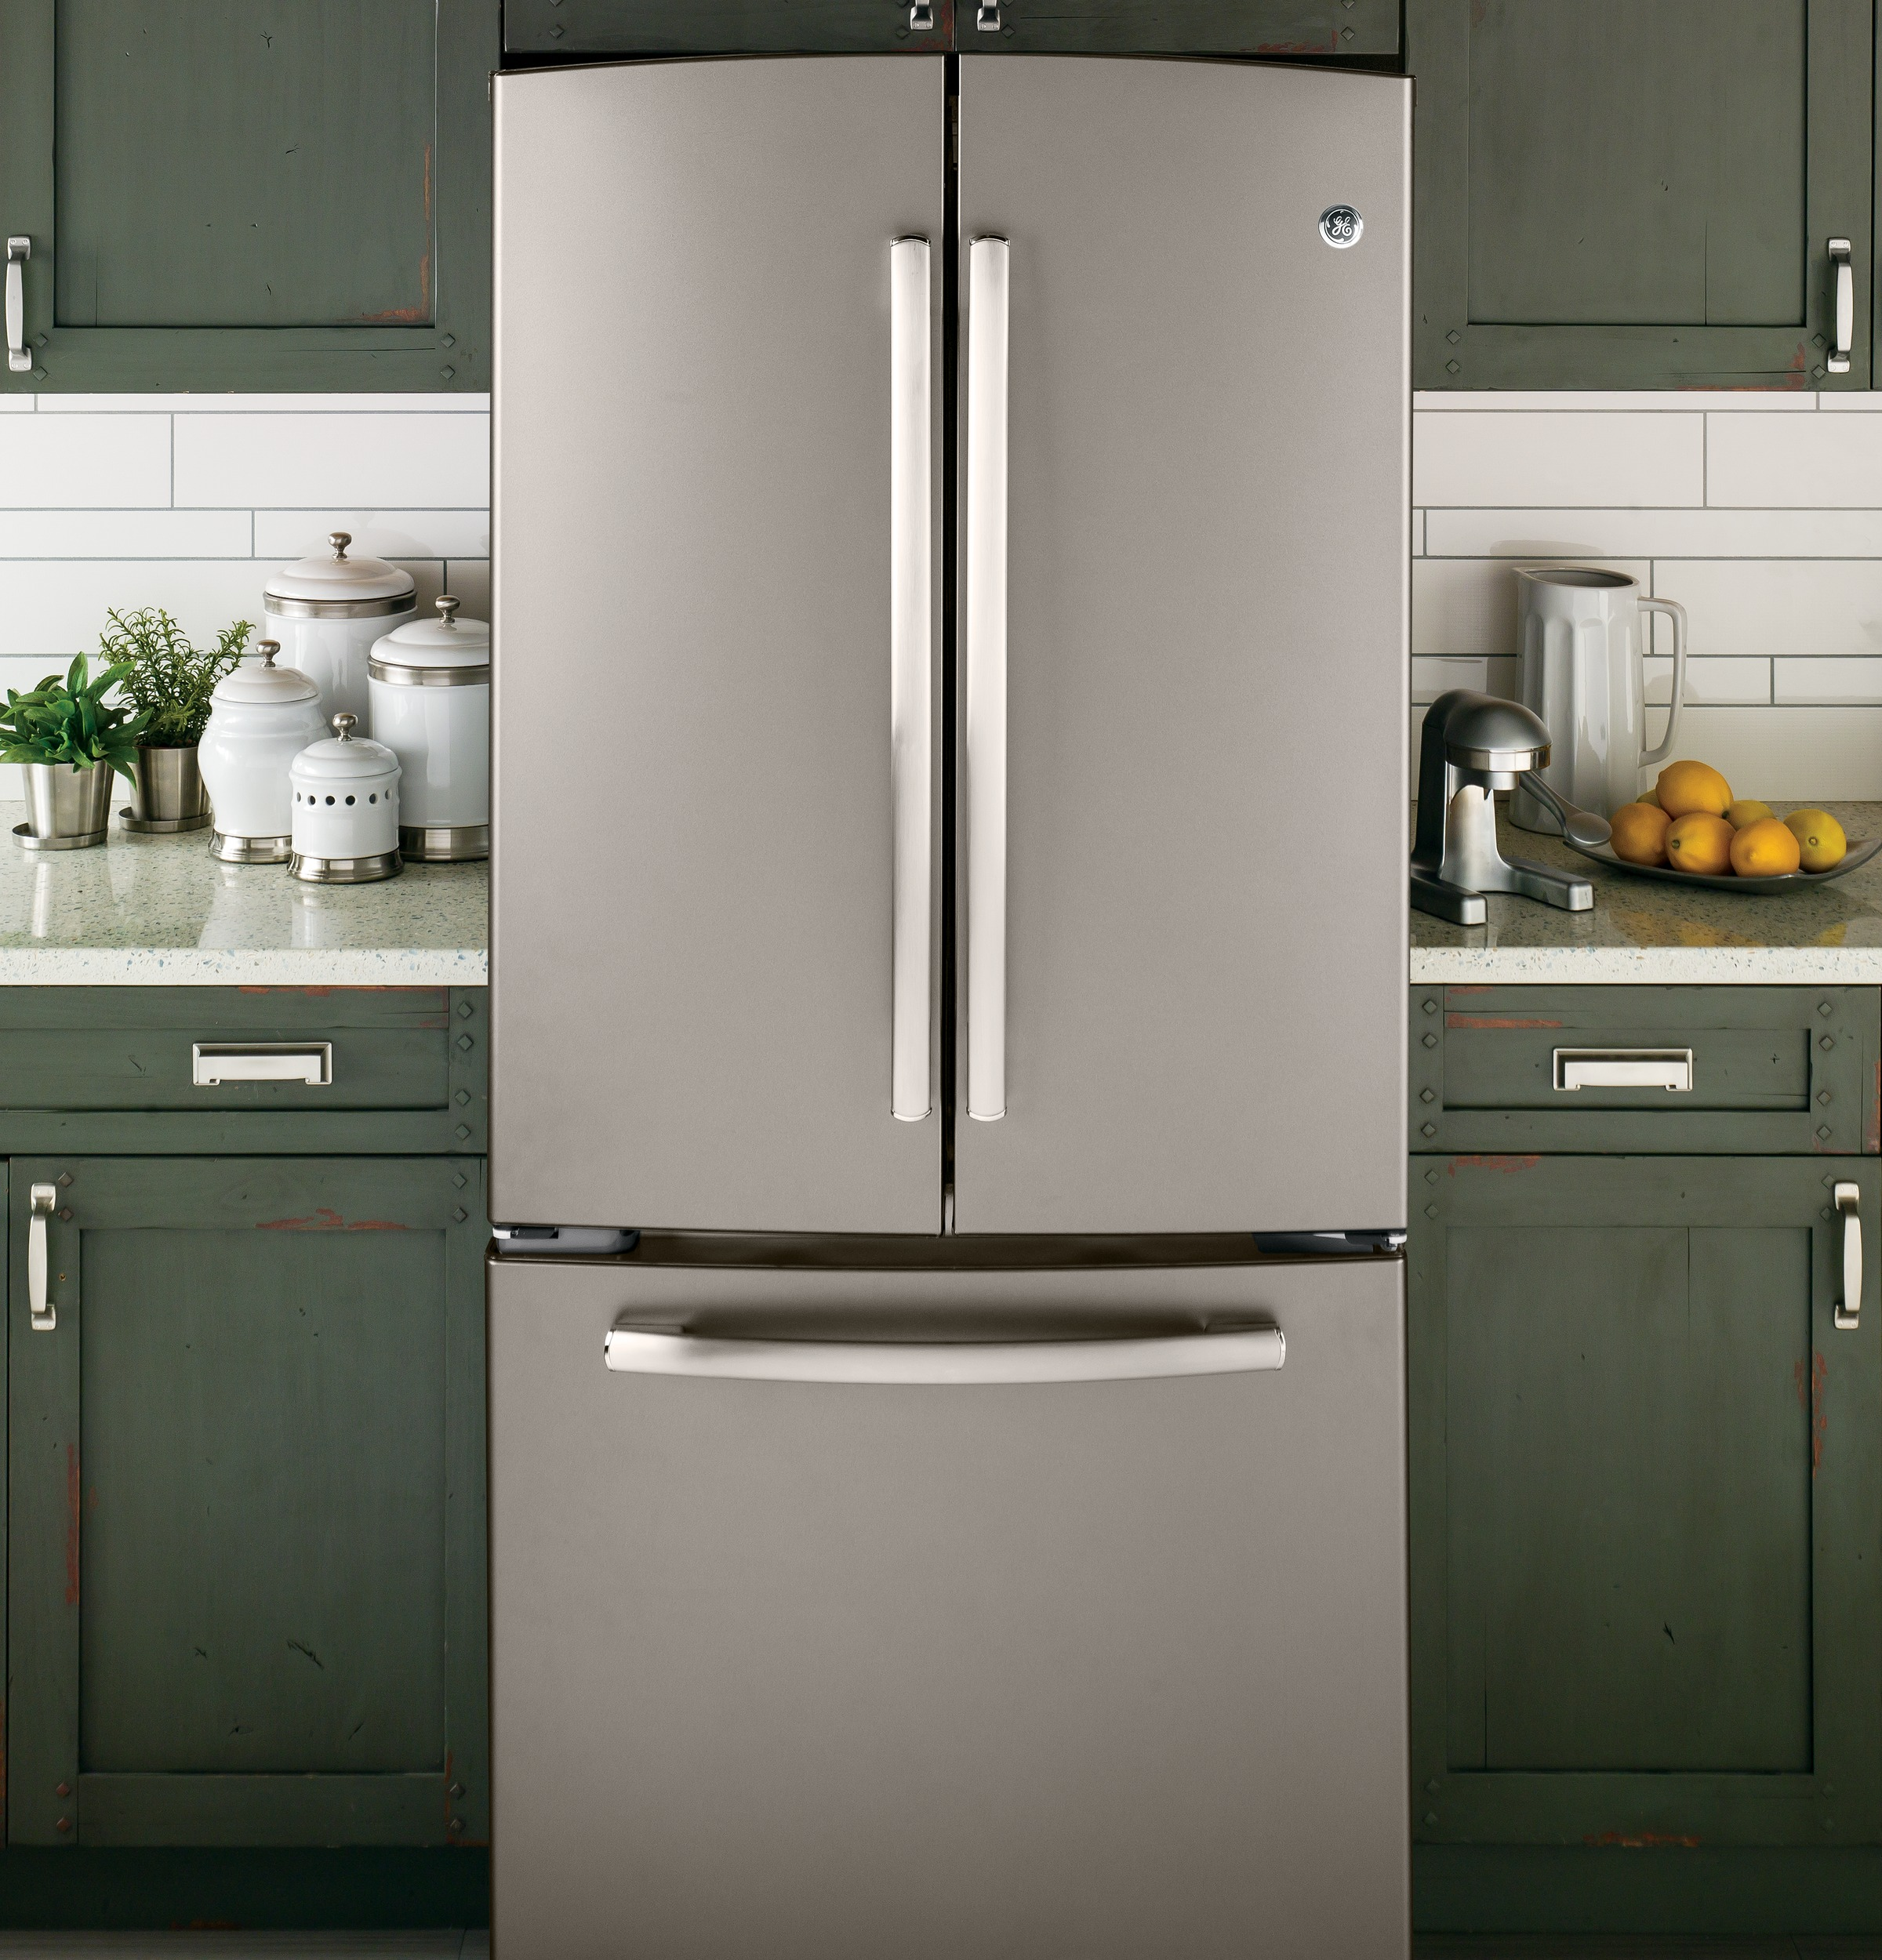 GE Appliances GNS23GMHES 22.7 cu. ft. French-Door Refrigerator - Slate